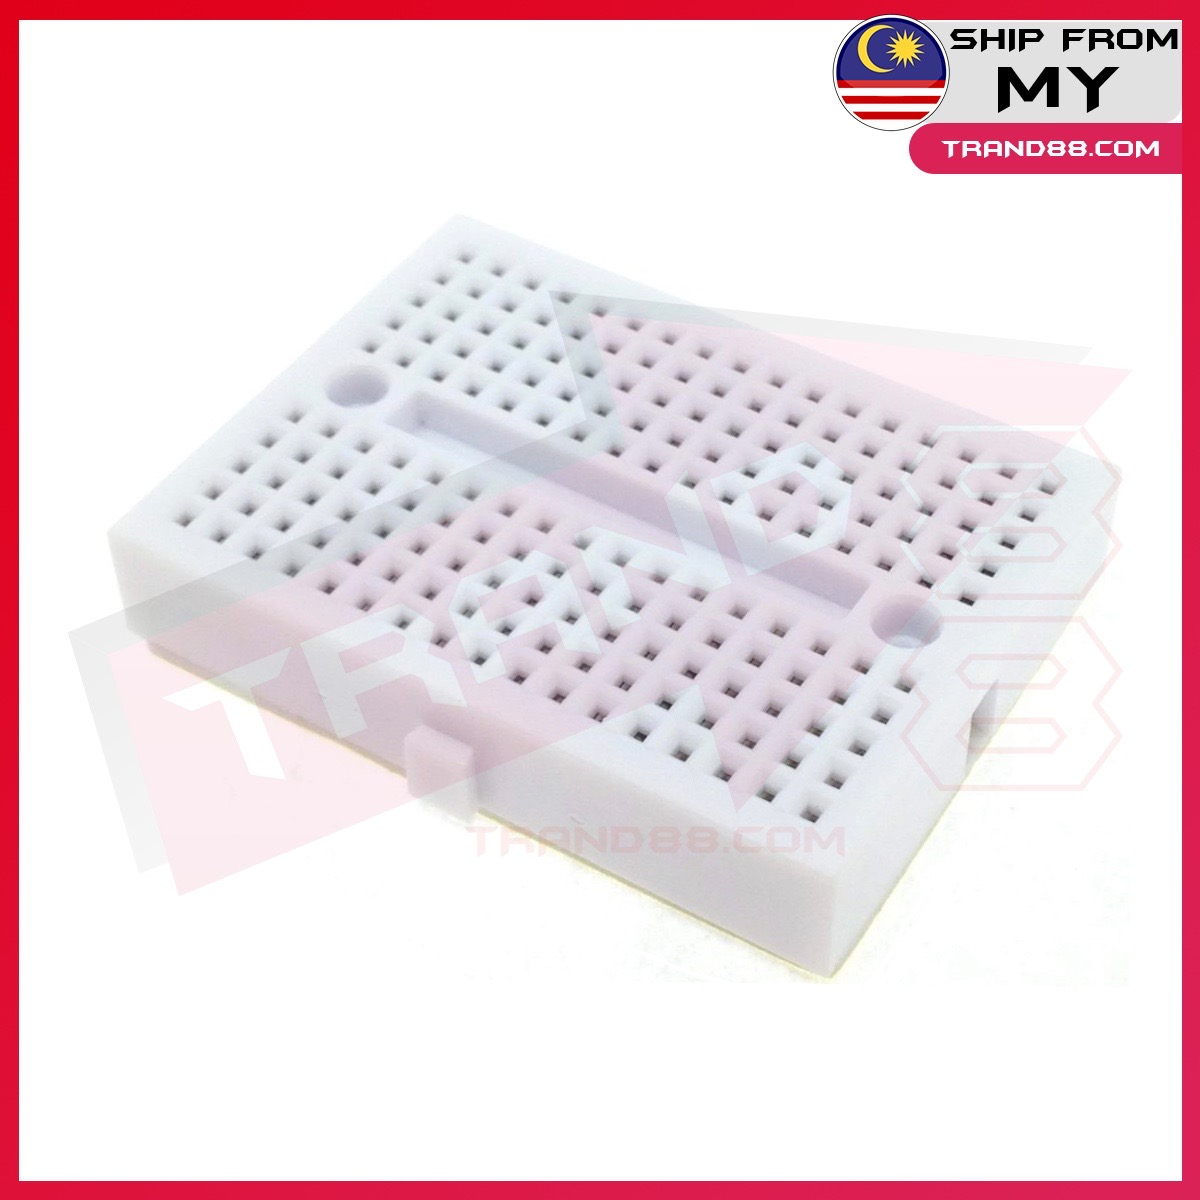 SYB-170 Linkable Mini Breadboard 170 Holes